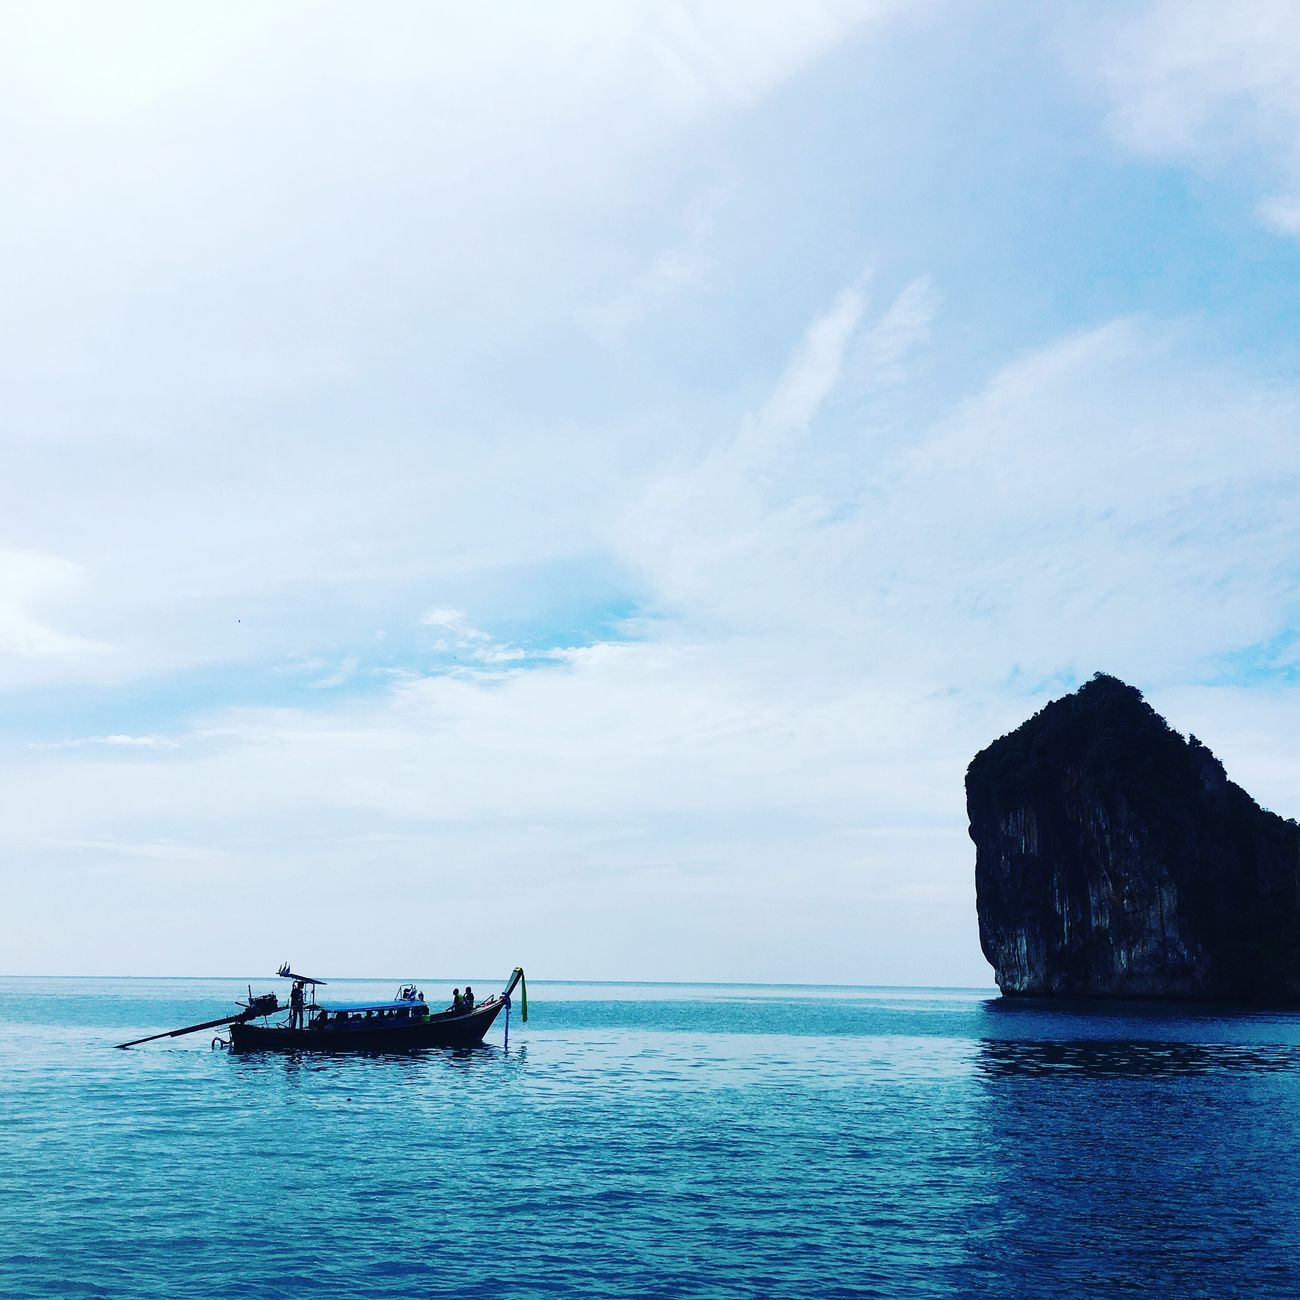 Travel Photography IPhoneography Krabi Thailand Sea Water Outdoors Sky No People Nature Day Astrology Sign Dusk Sky First Eyeem Photo Boatyard